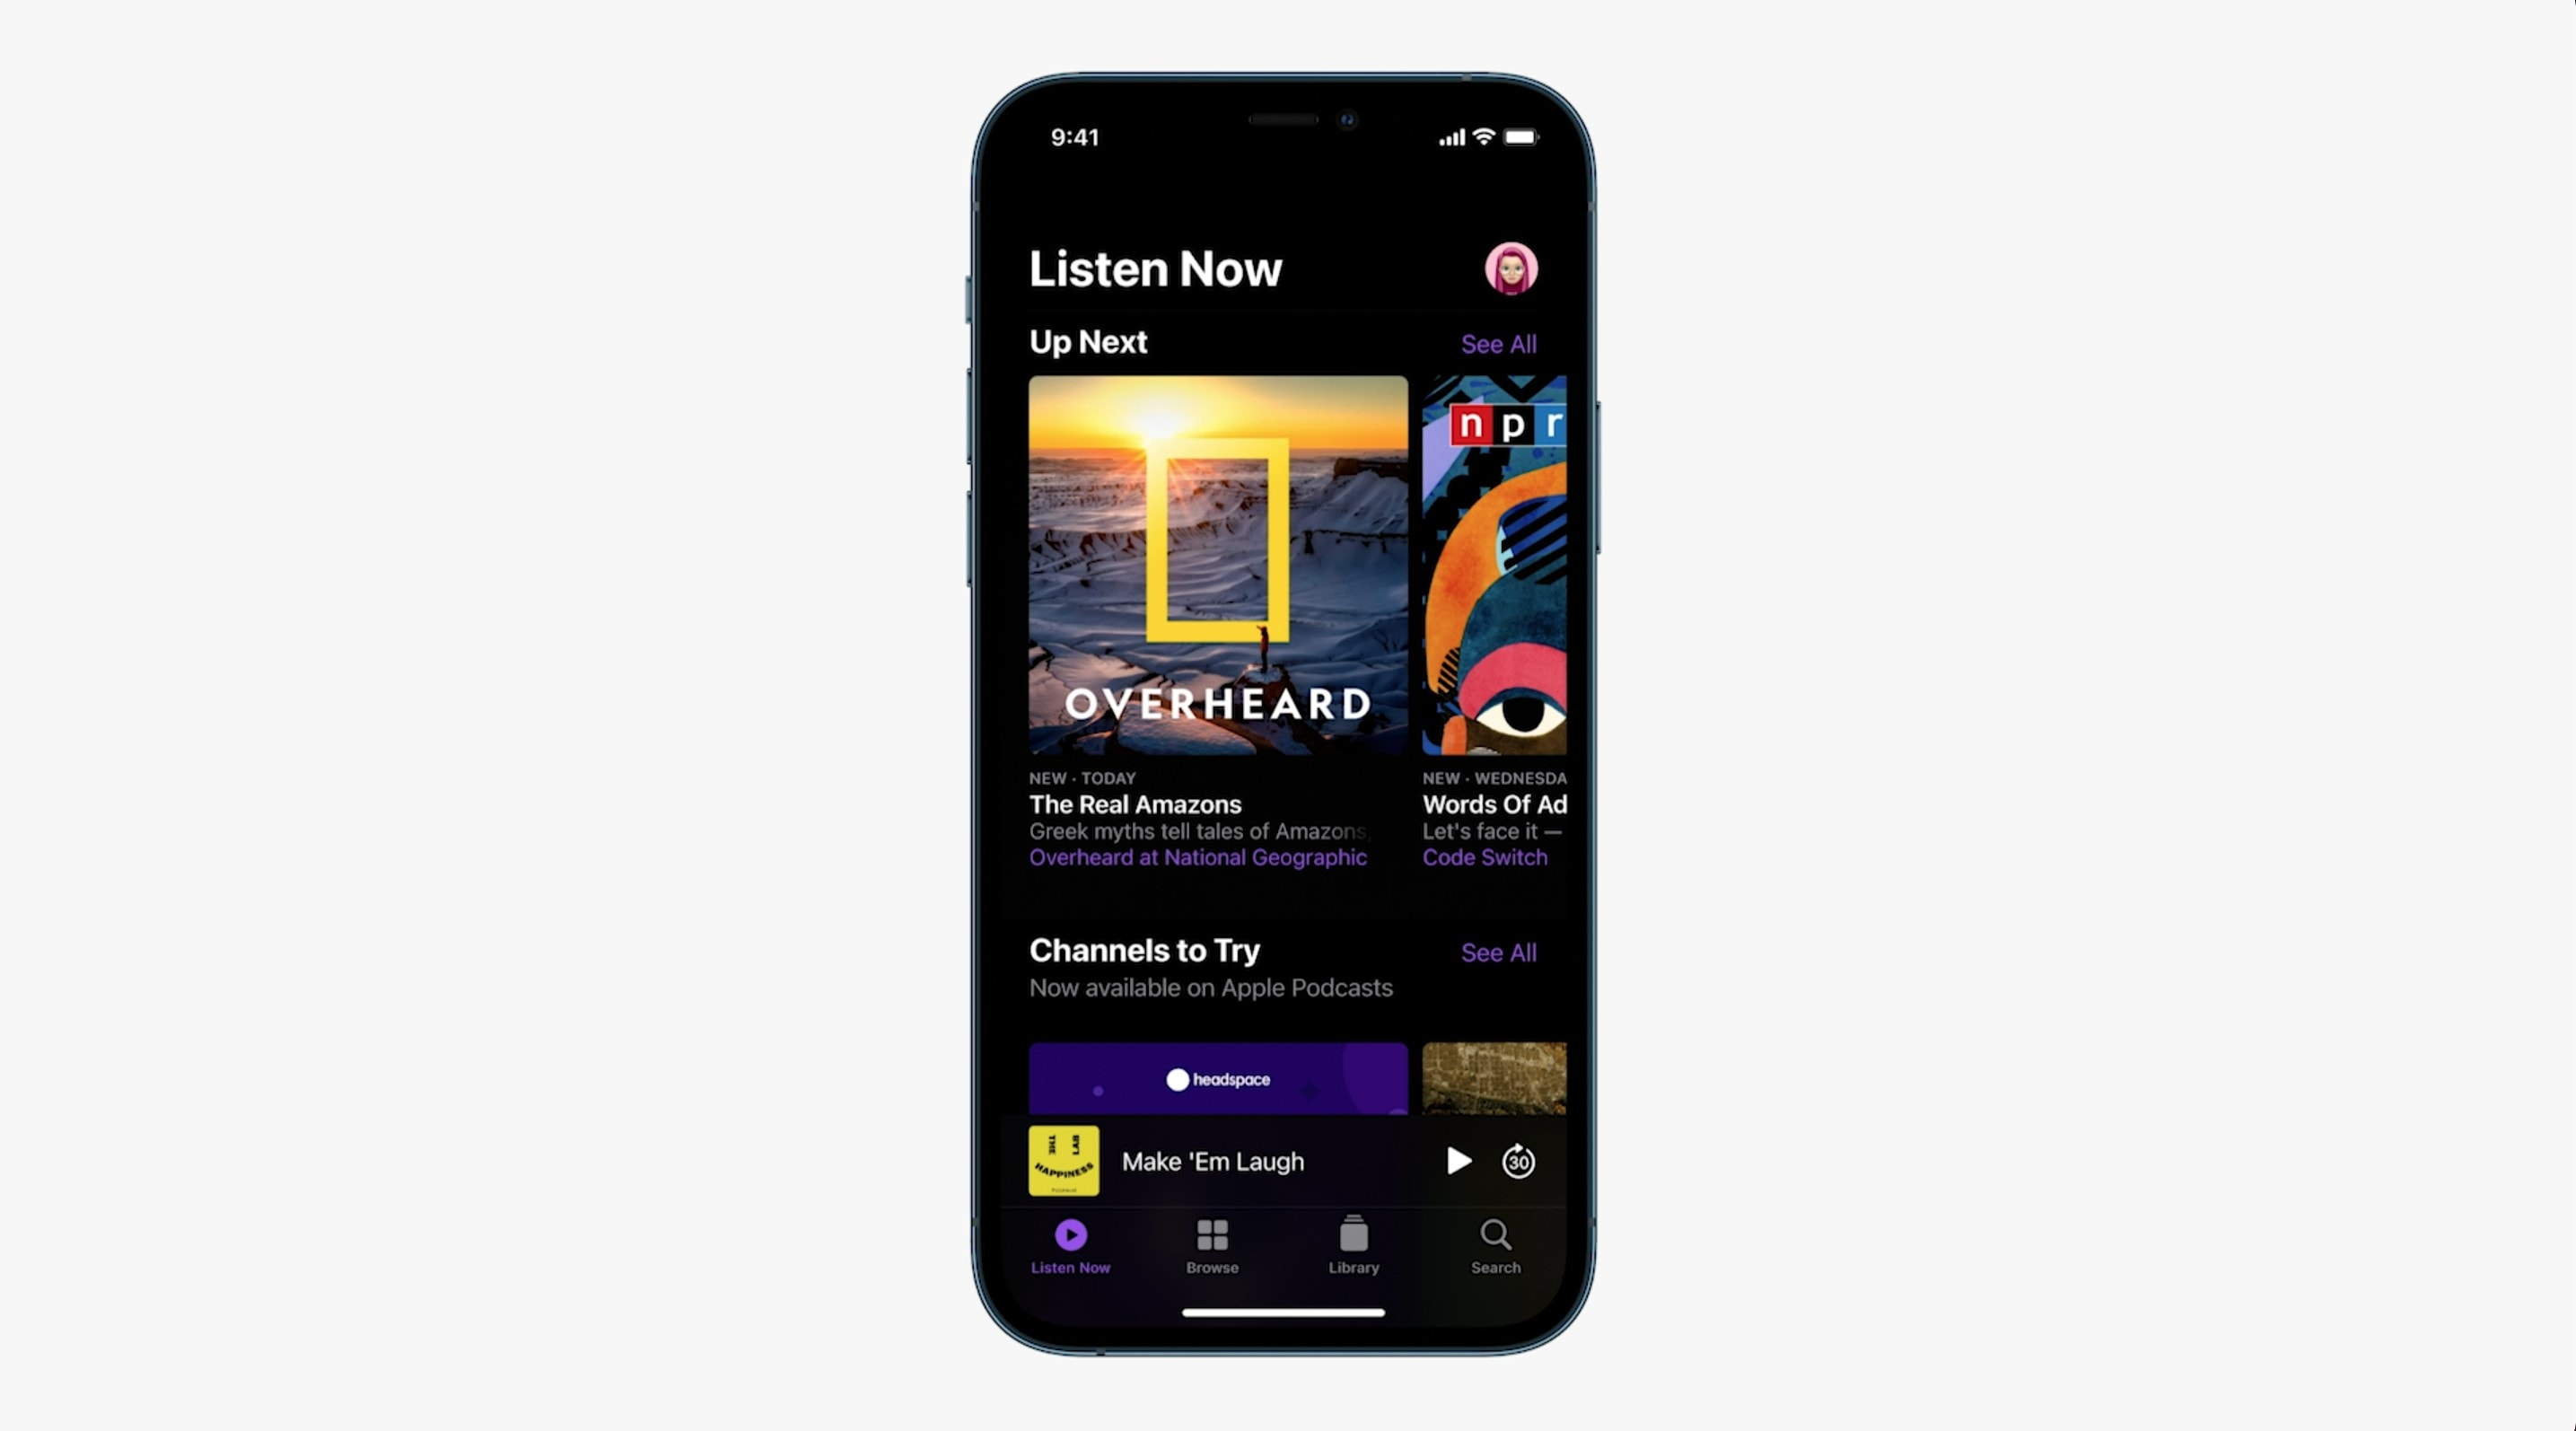 Apple's new Podcasts app looks great, and podcasters can now charge subscriptions